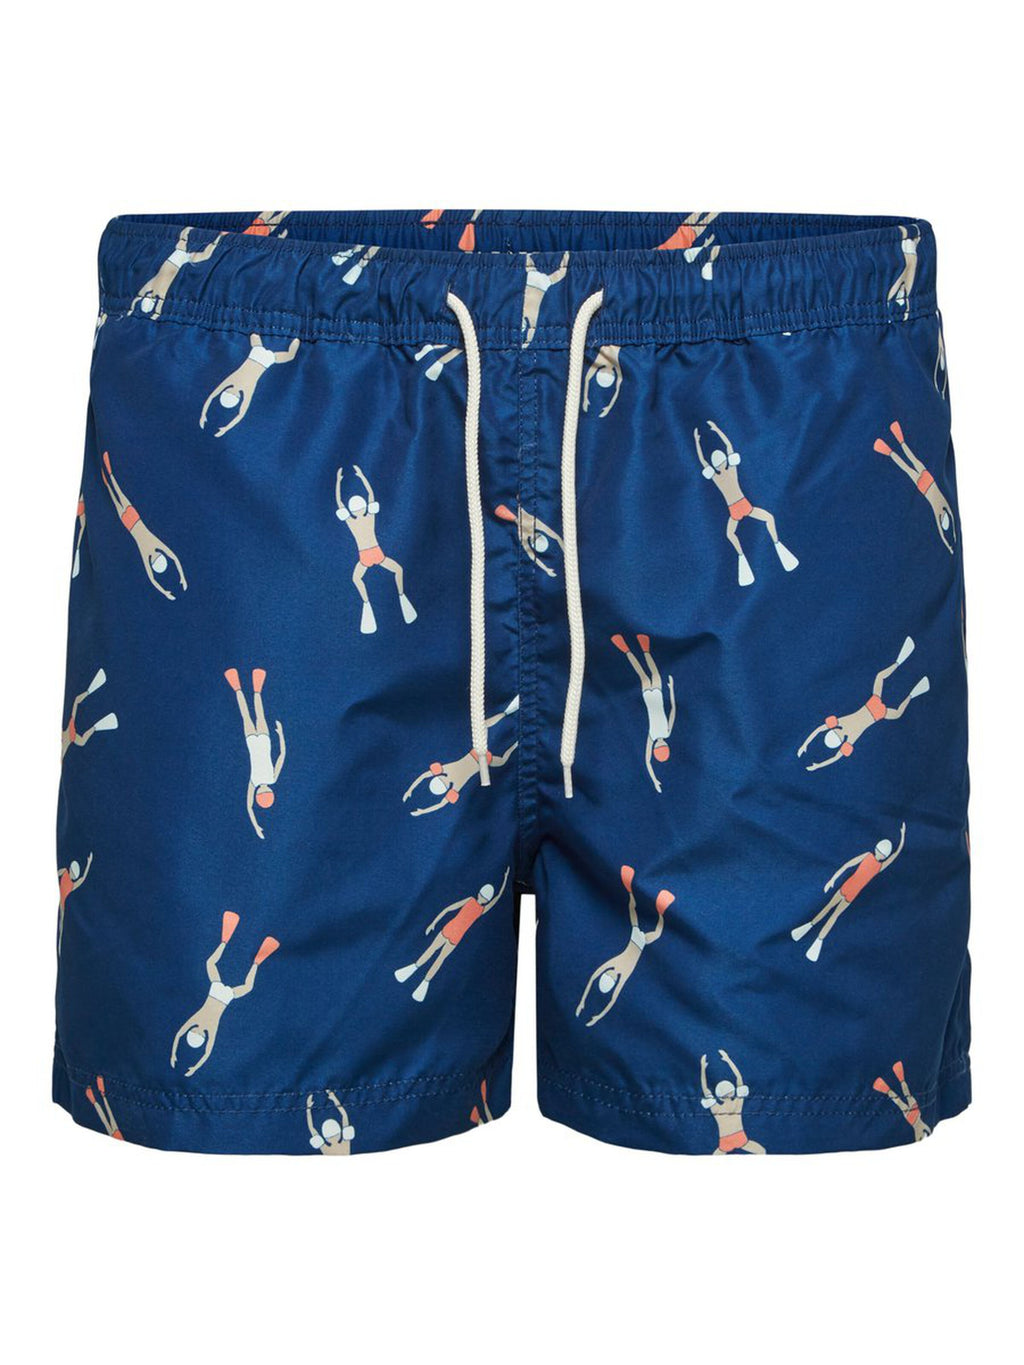 Printed Swim Shorts - Swimmers / Blue